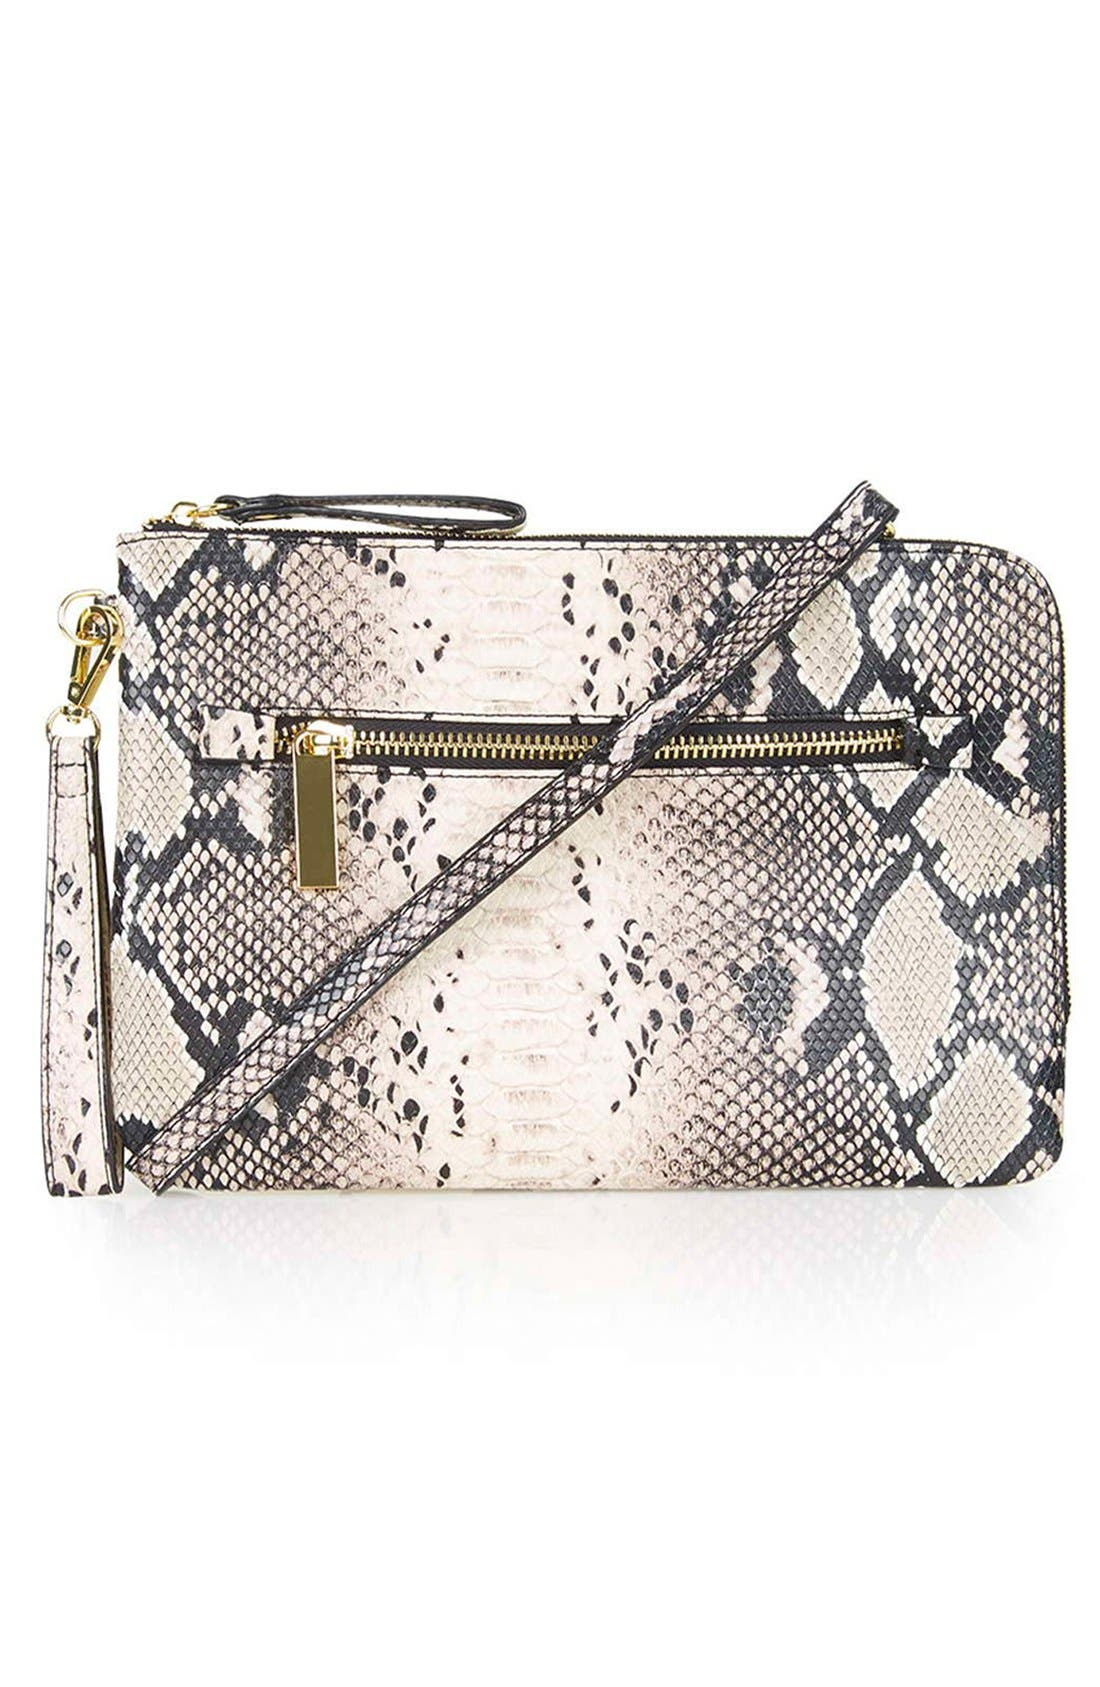 Main Image - Topshop Snake Print Faux Leather Clutch